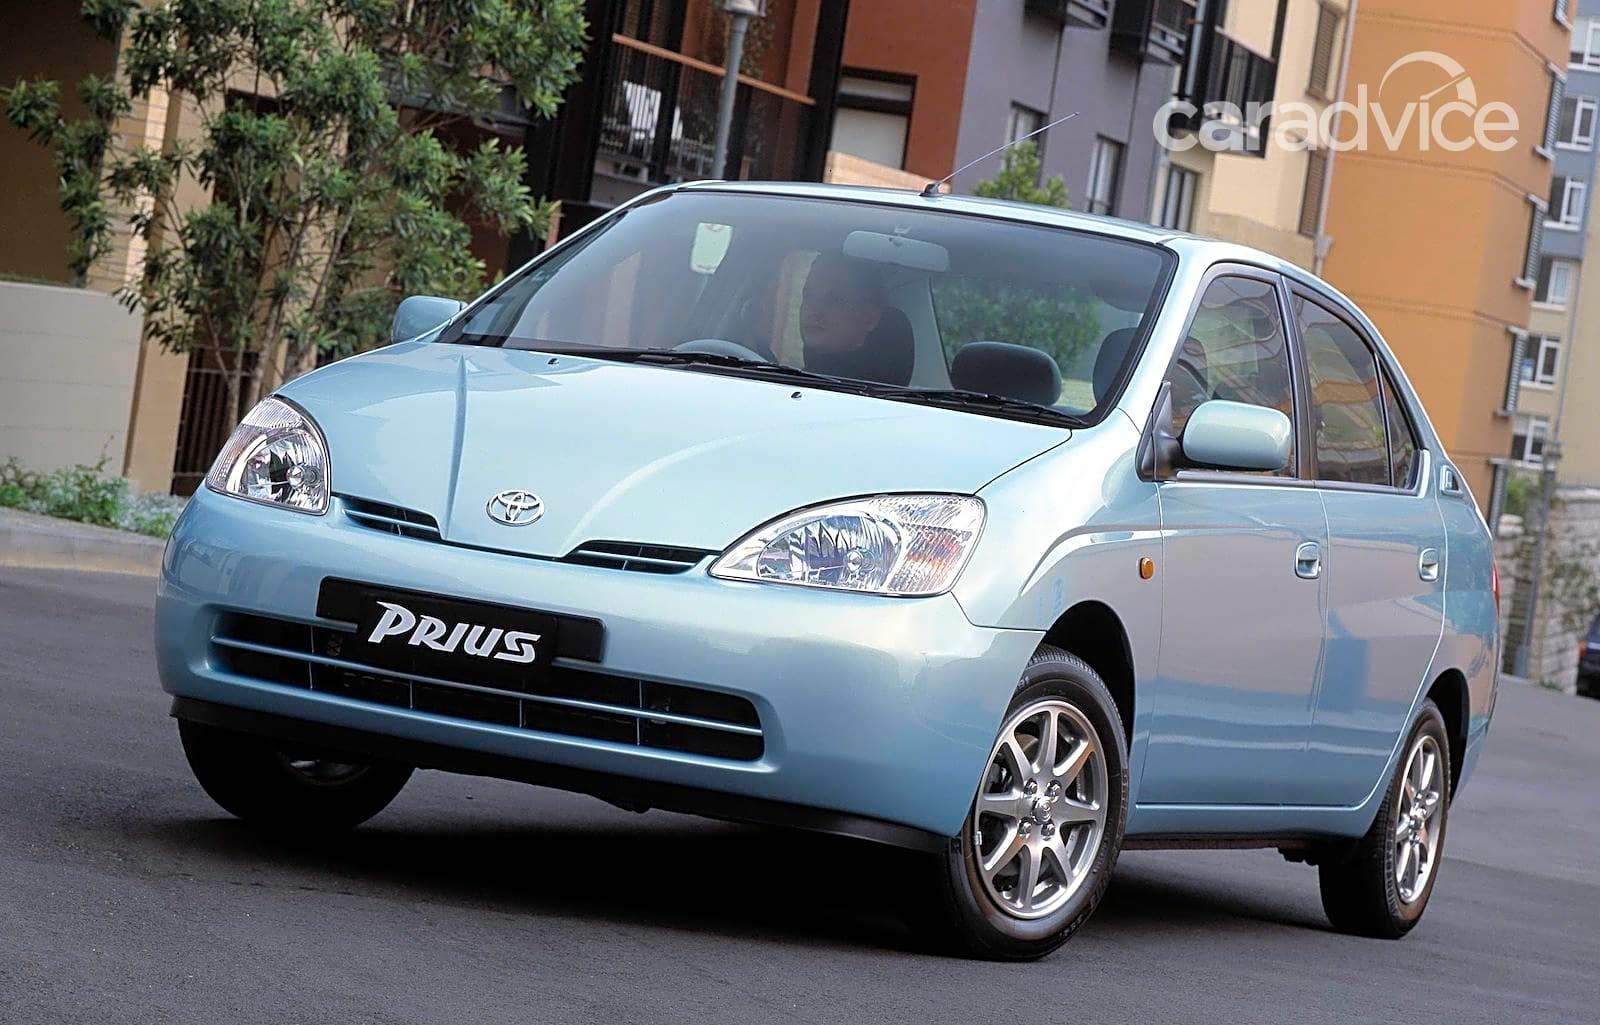 Toyota Prius wedge shape could change for next-gen hybrid ...